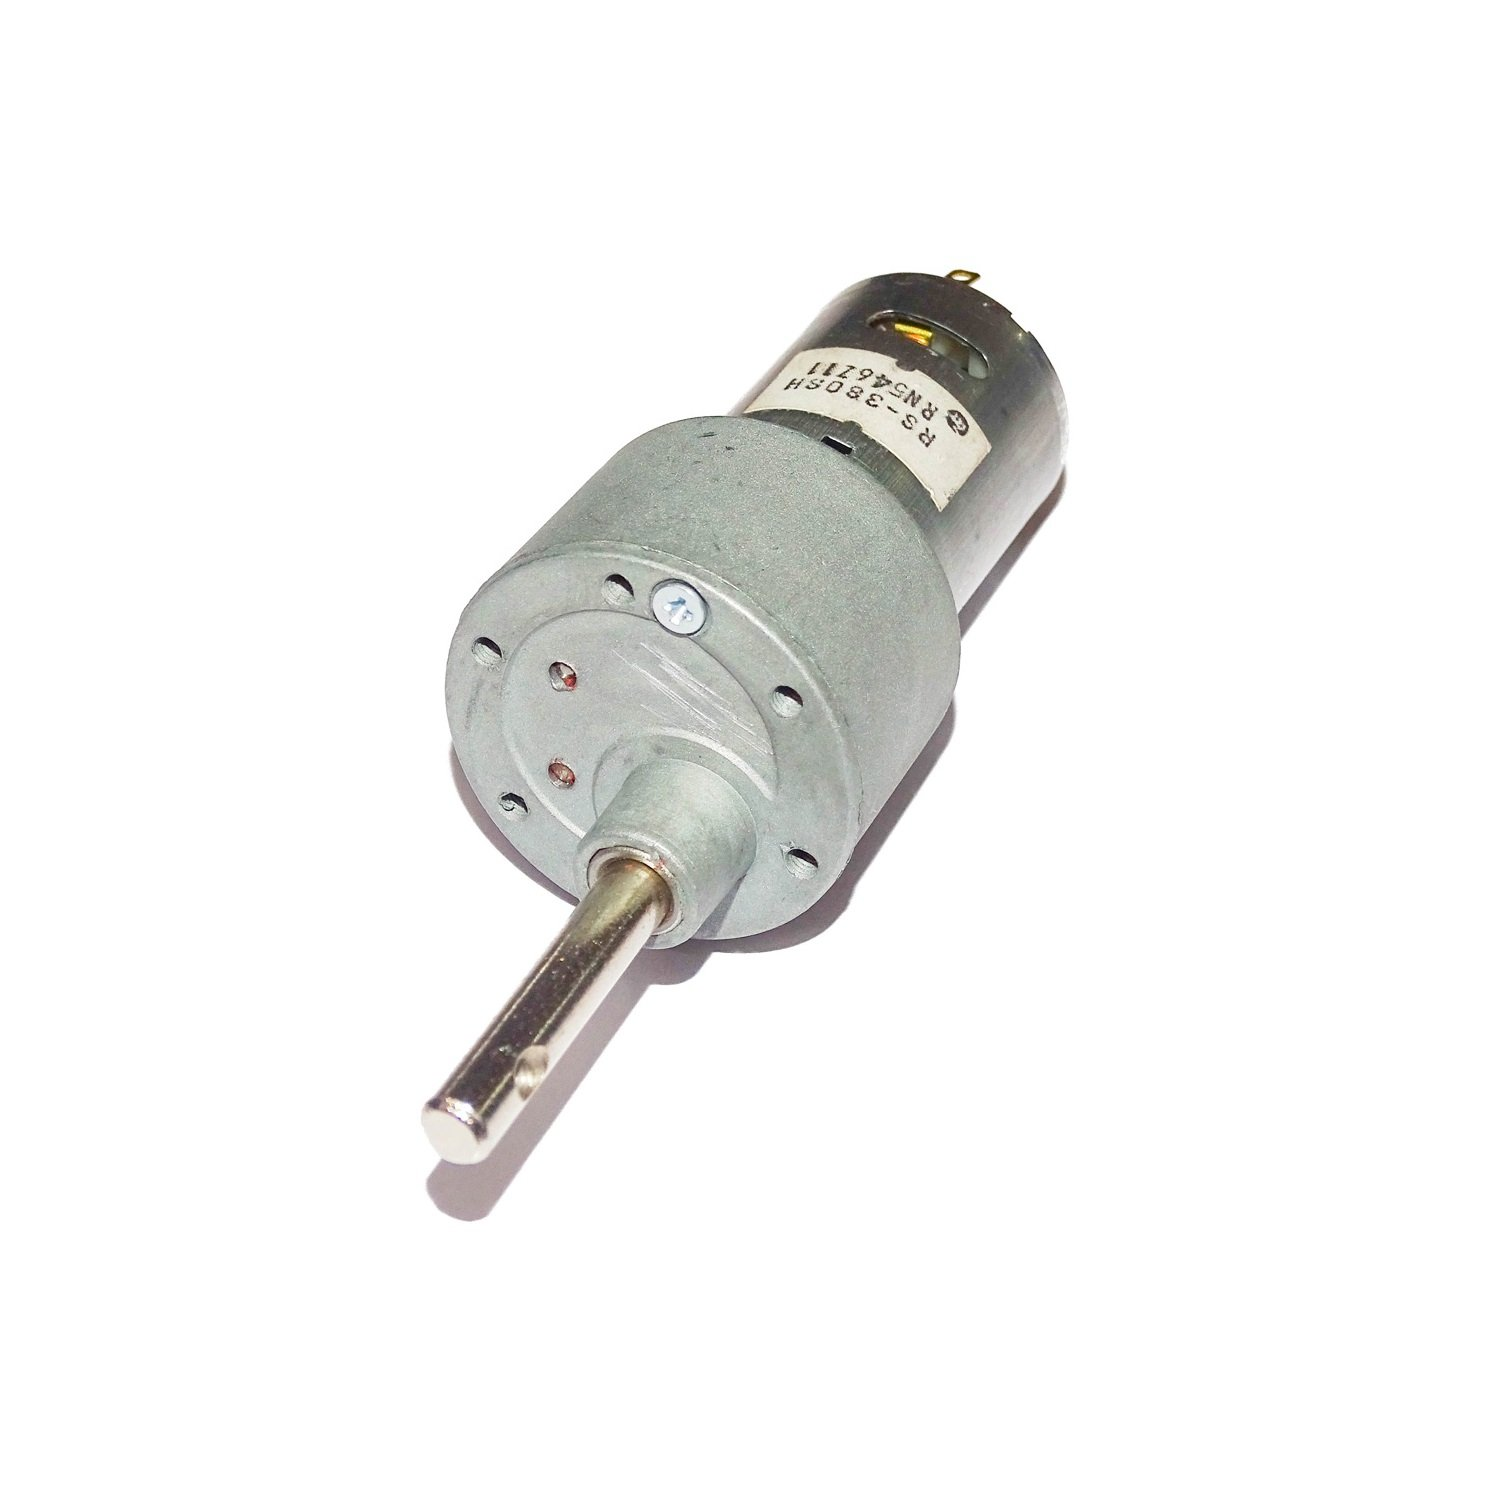 Johnson Side Shaft Geared Motor (Made In India) 12 V DC 150 RPM